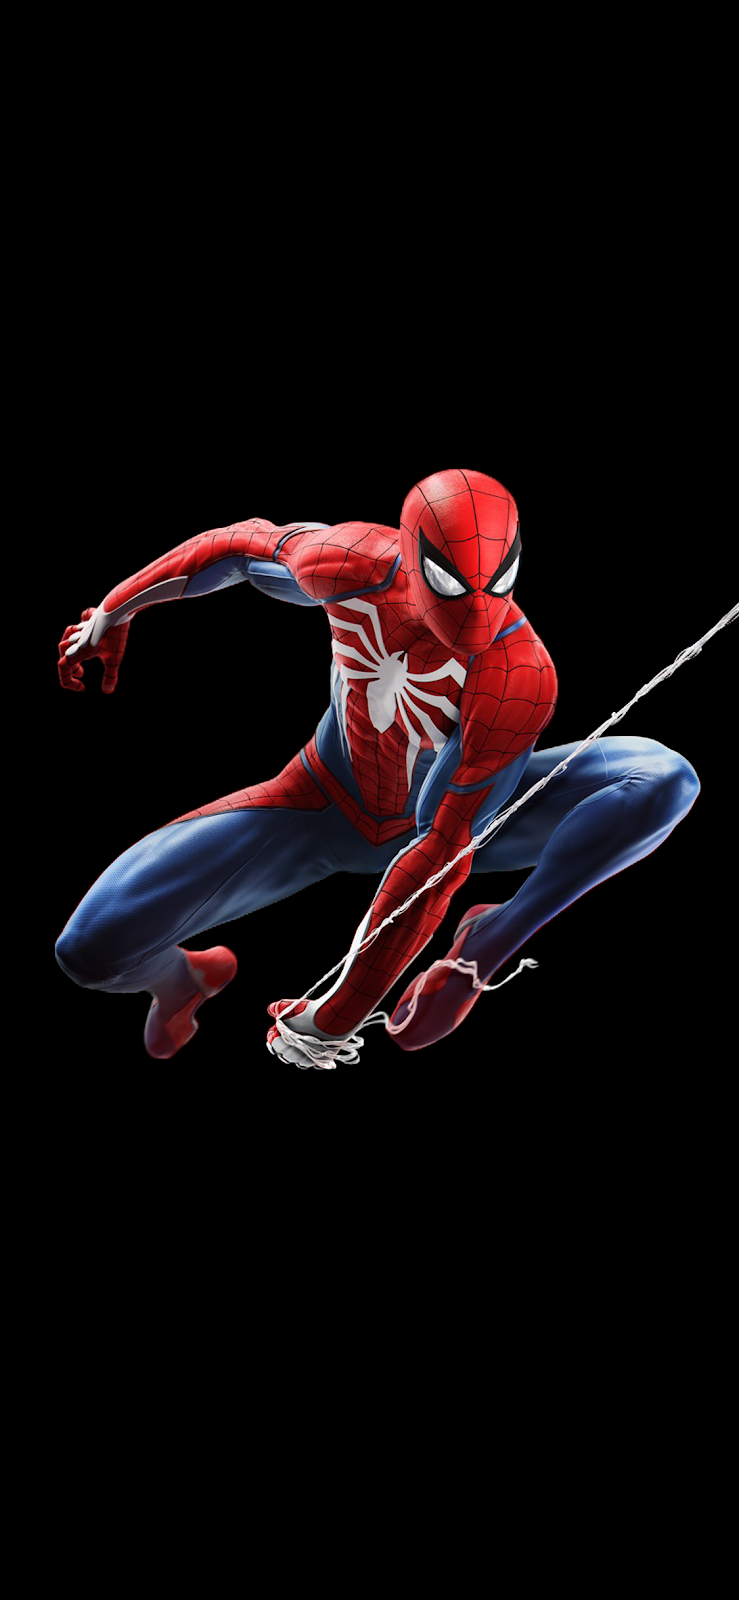 Spider Man V2 Iphone X Saving Battery For Amoled Display